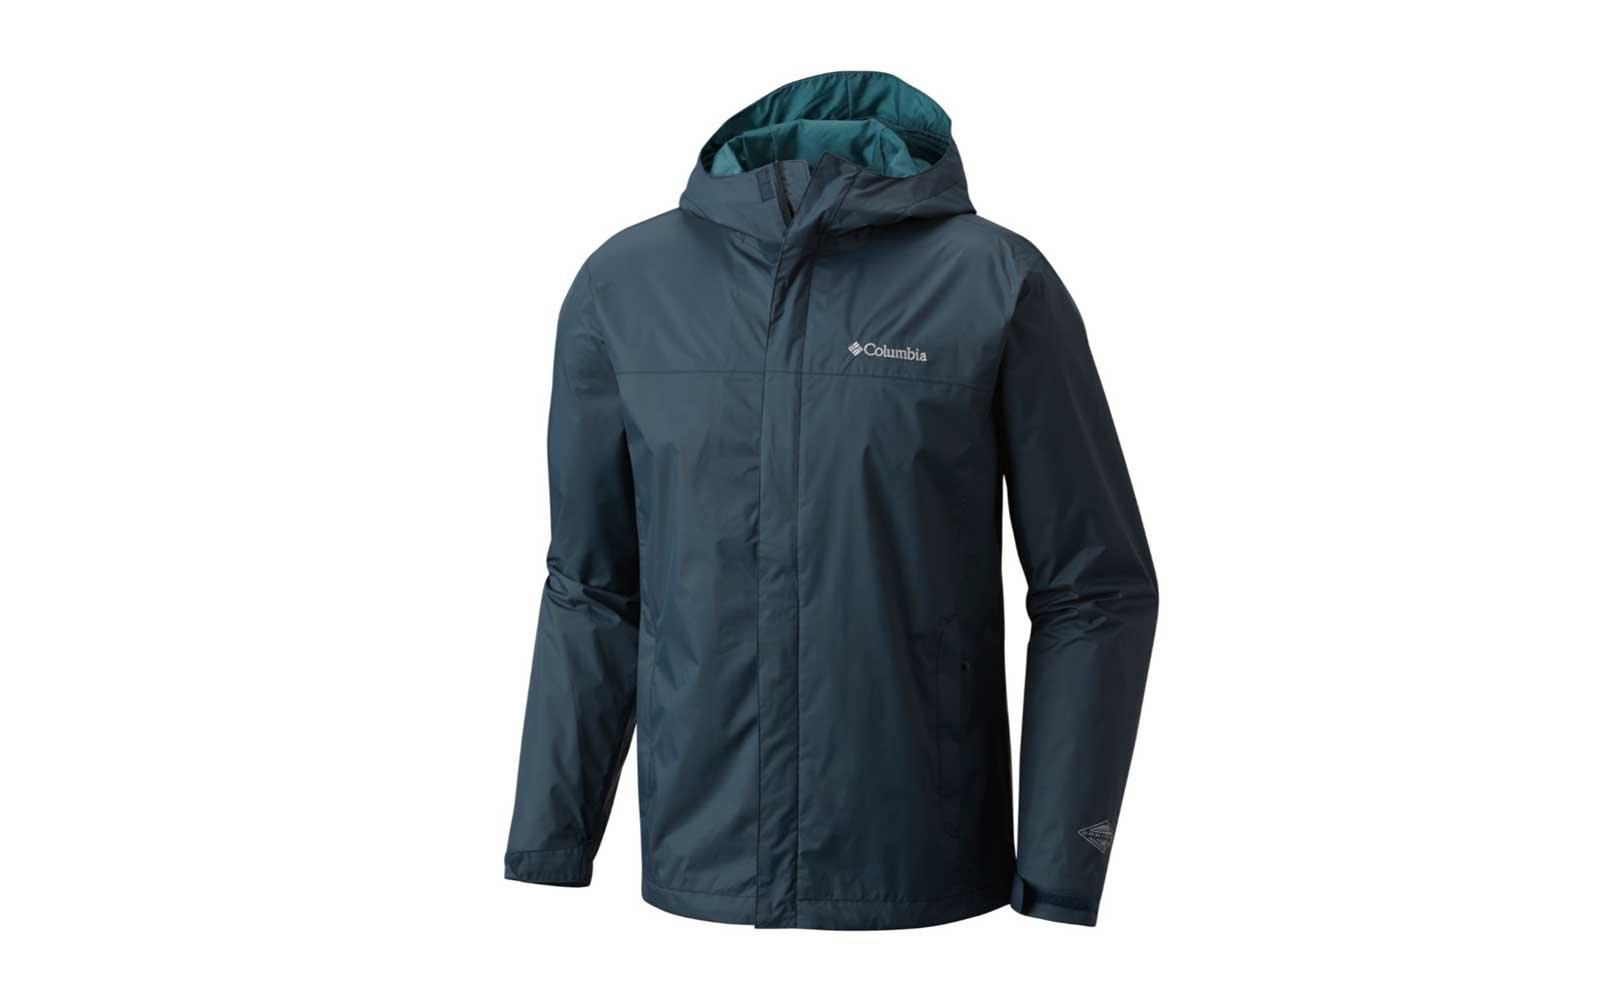 Why you'll love it: The advanced design of the Columbia Outdry Ex Gold Jacket keeps you cool in hot weather, warm when it's cold, and protected from rain, sleet, or snow.. Full disclosure, I own.